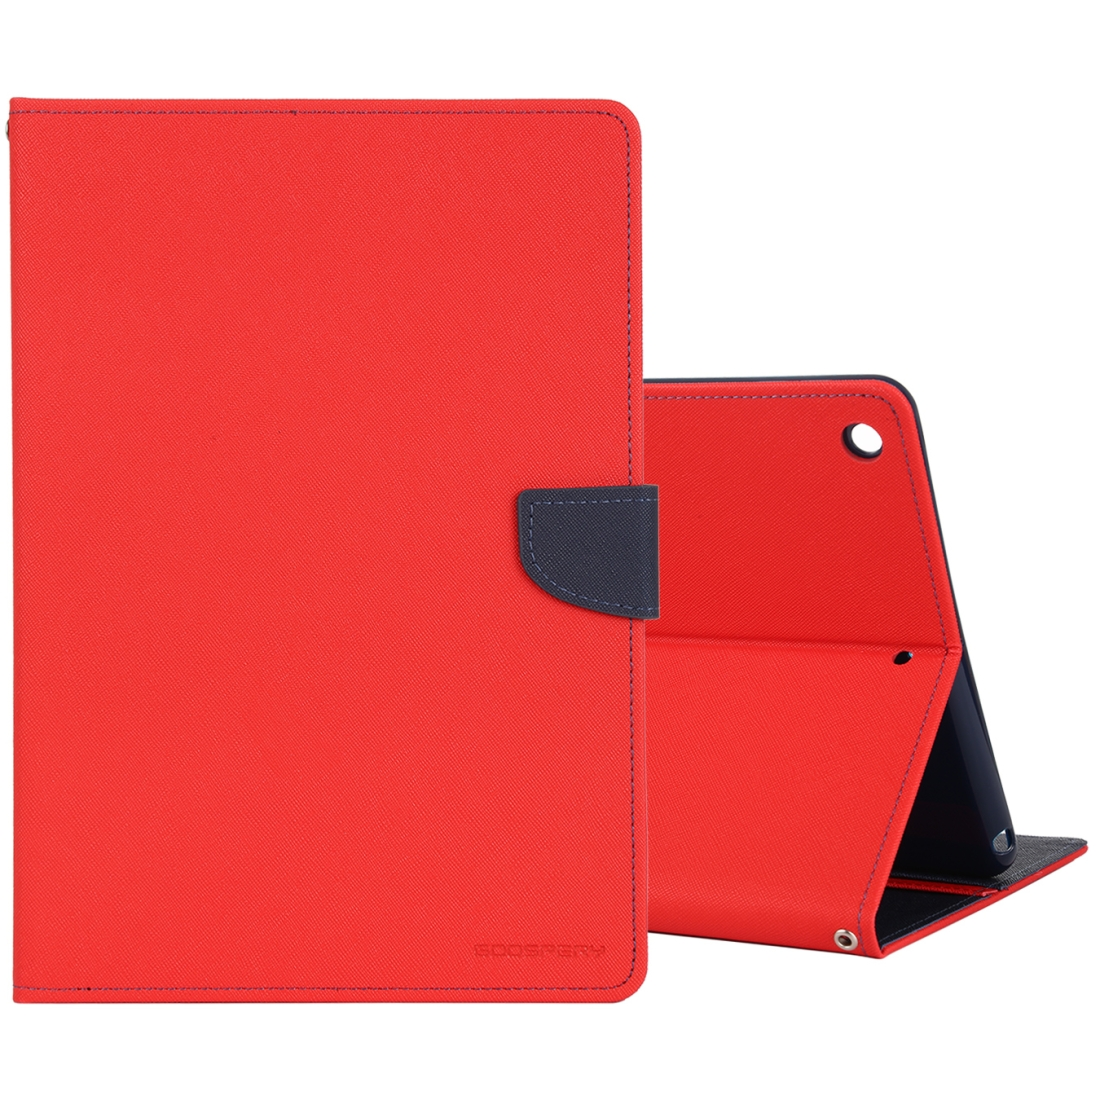 iPad 7th Generation Case (10.2 Inch) Cross Texture Leather Case with Sleeve & Holder  (Red)